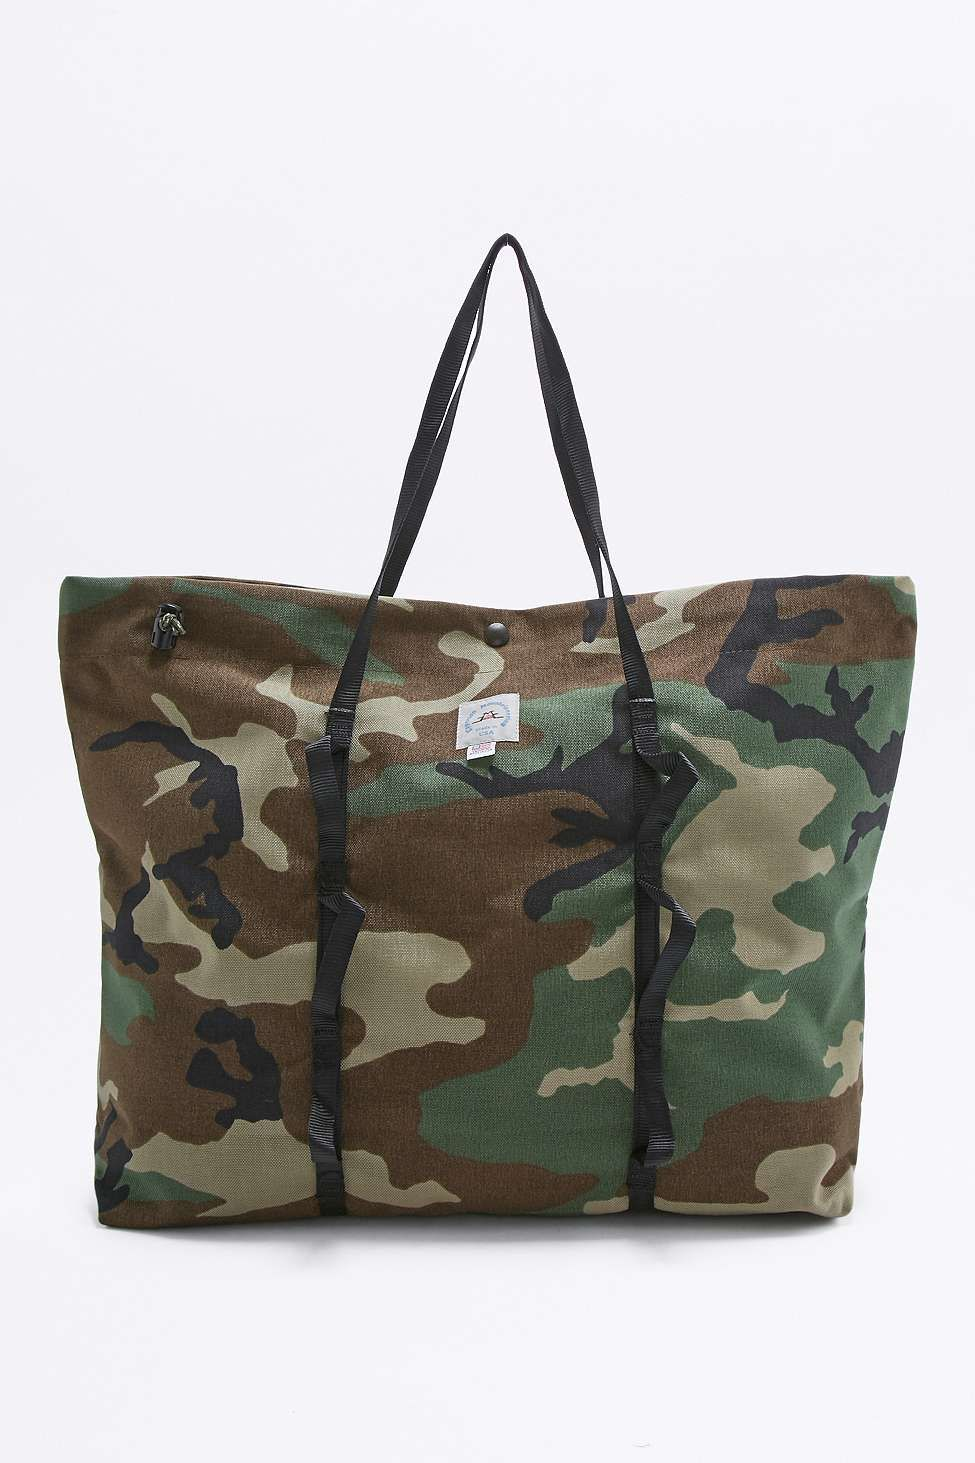 Epperson Mountaineering Climb Large Camo Tote Bag